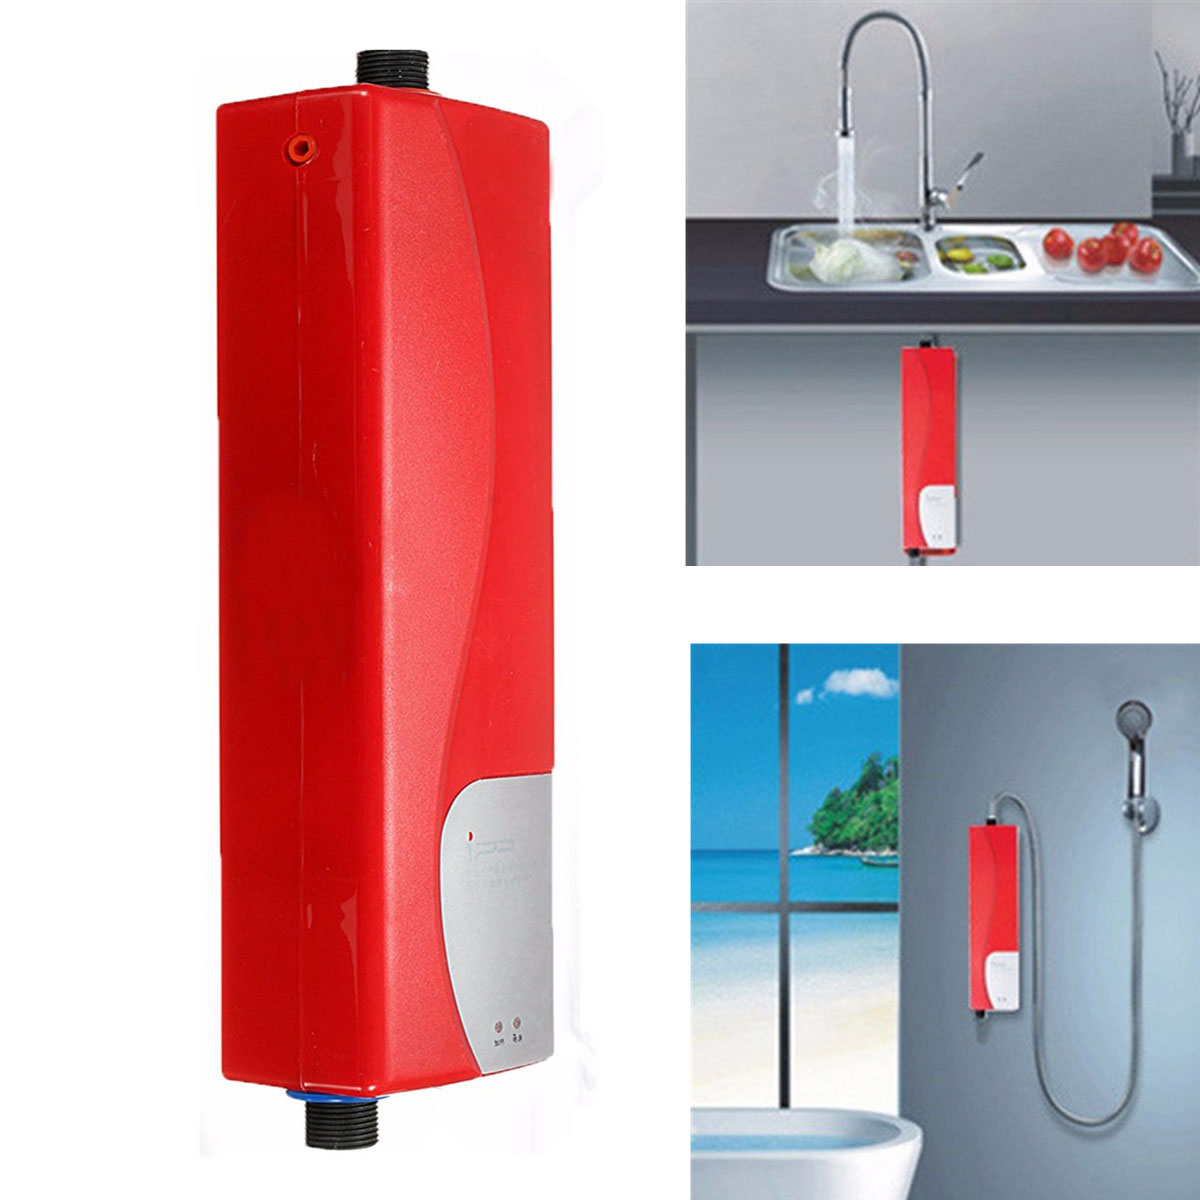 Electric Tankless Water Heater Instant Shower 220V 3000W ABS Household Water Heater For Indoor Kitchen Bathroom Water Heater(China)